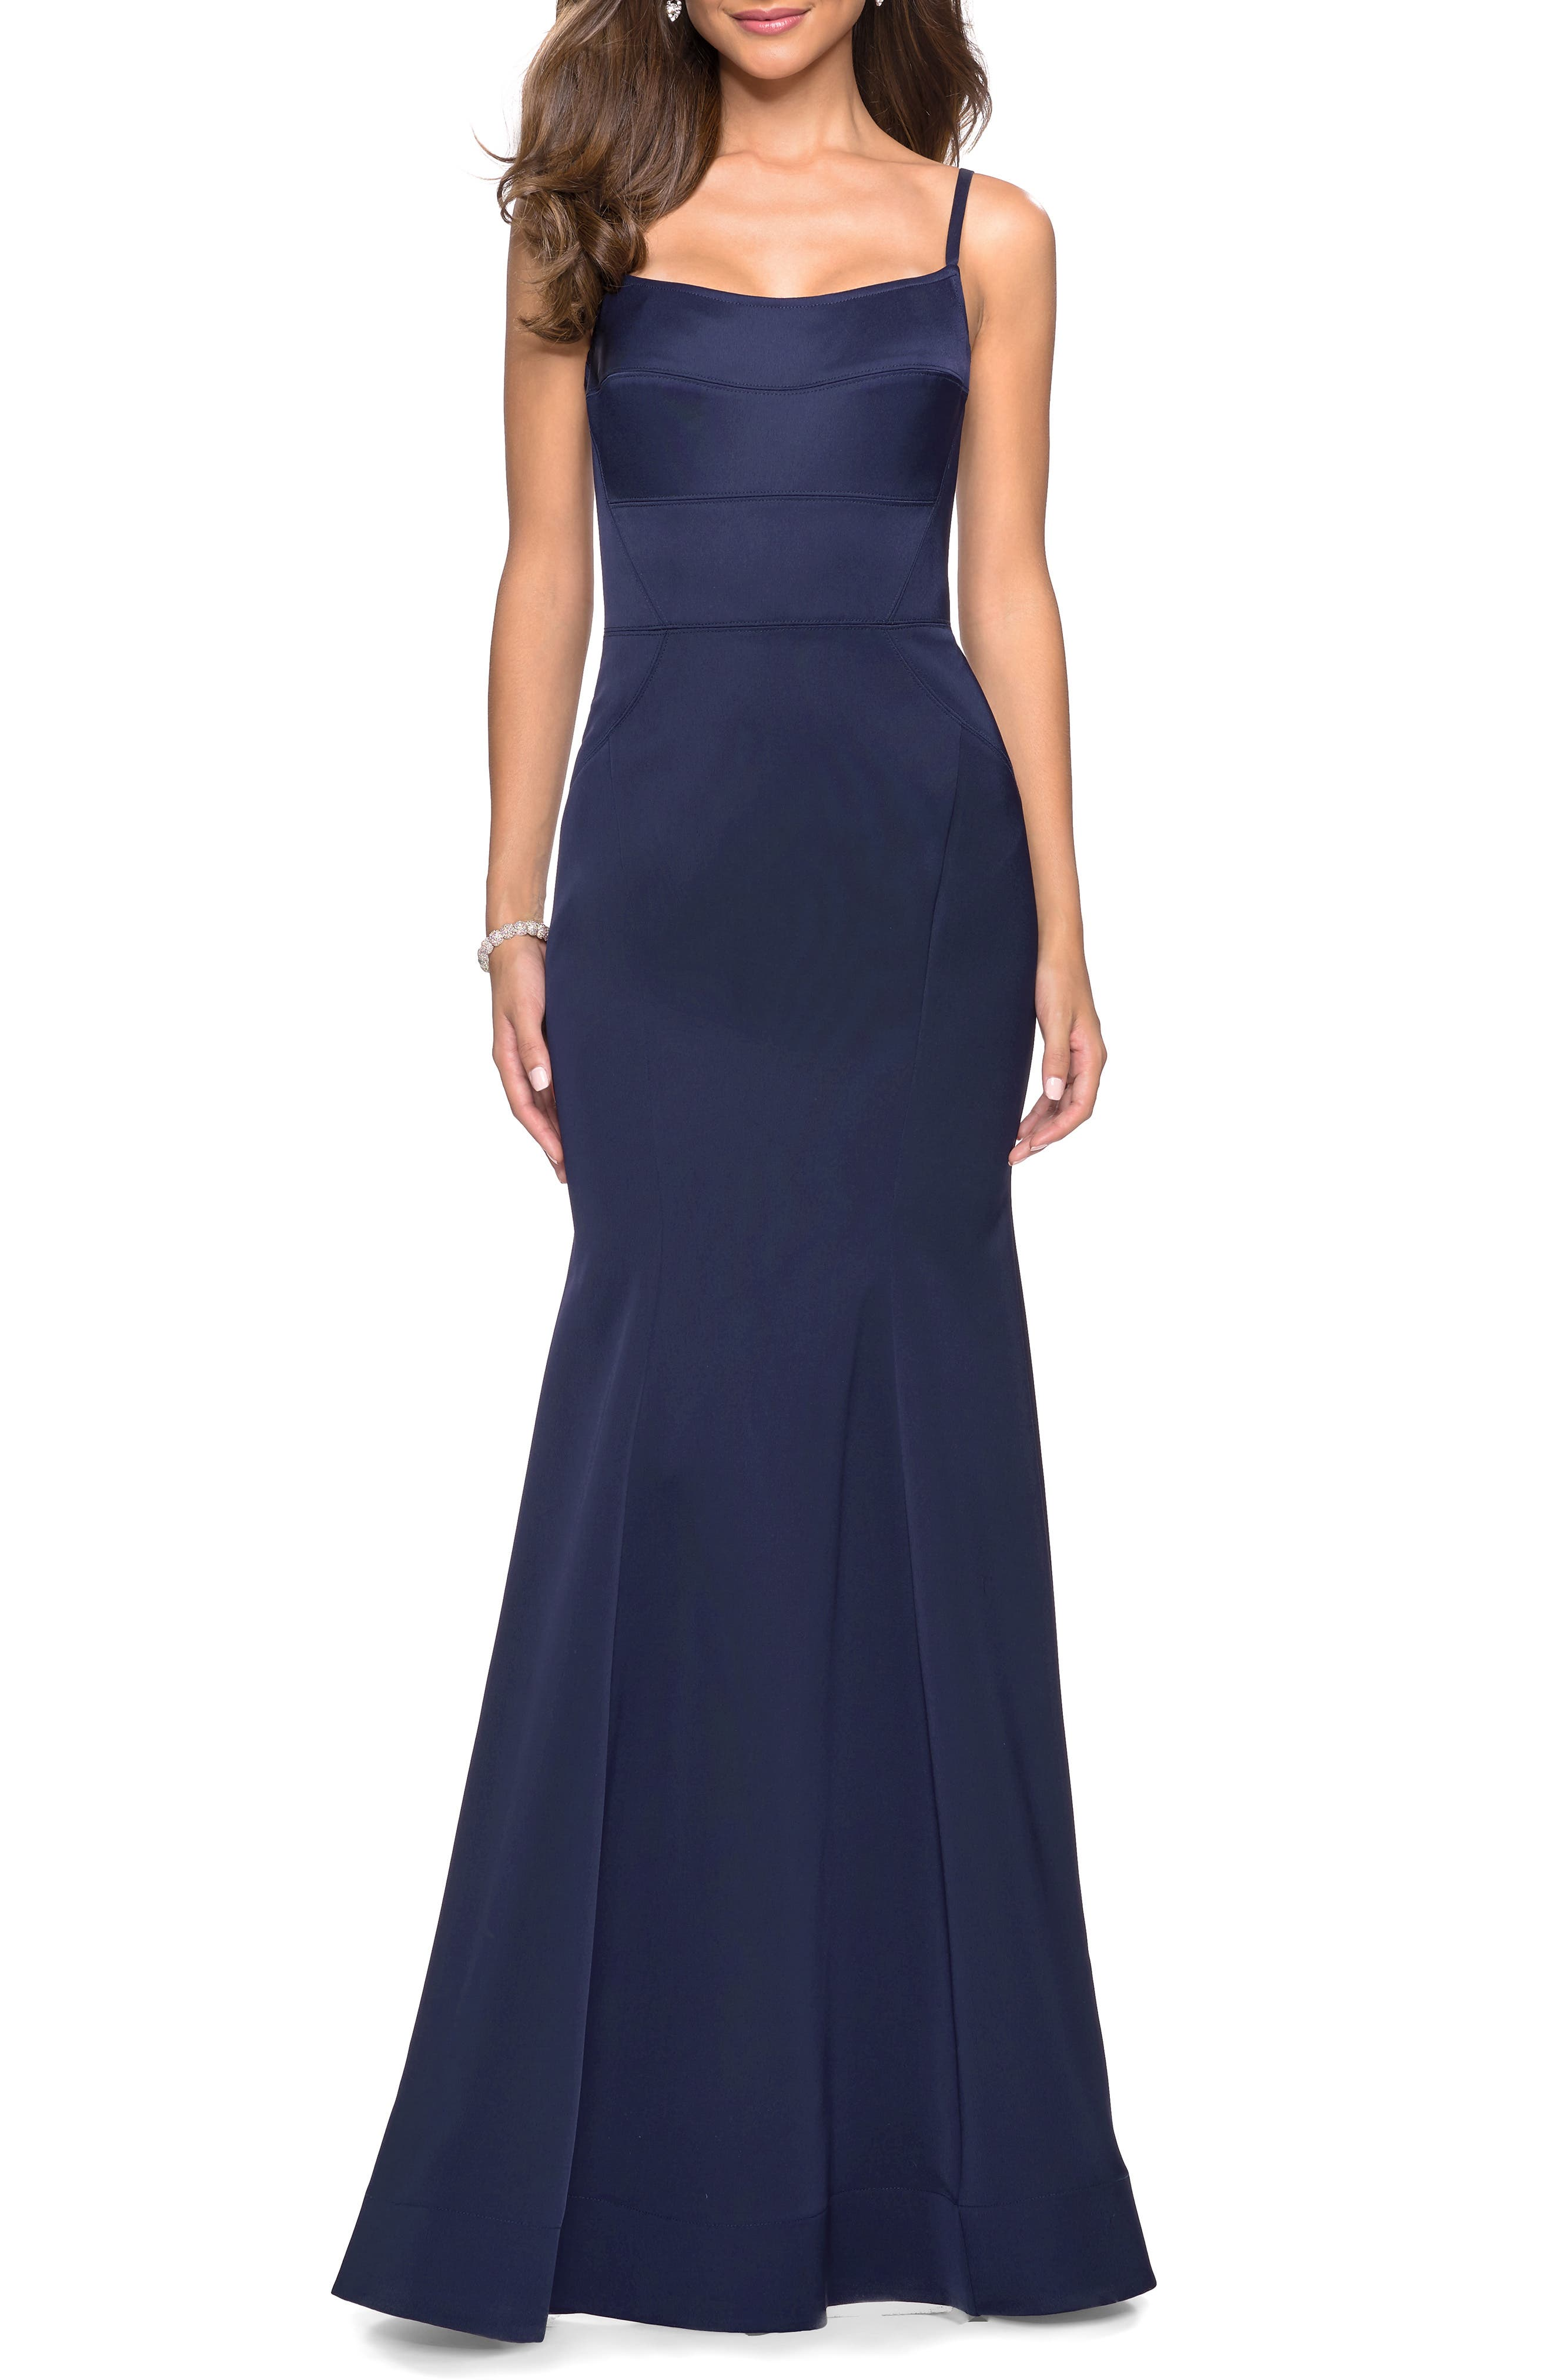 La Femme Structured Thick Jersey Trumpet Evening Dress, Blue